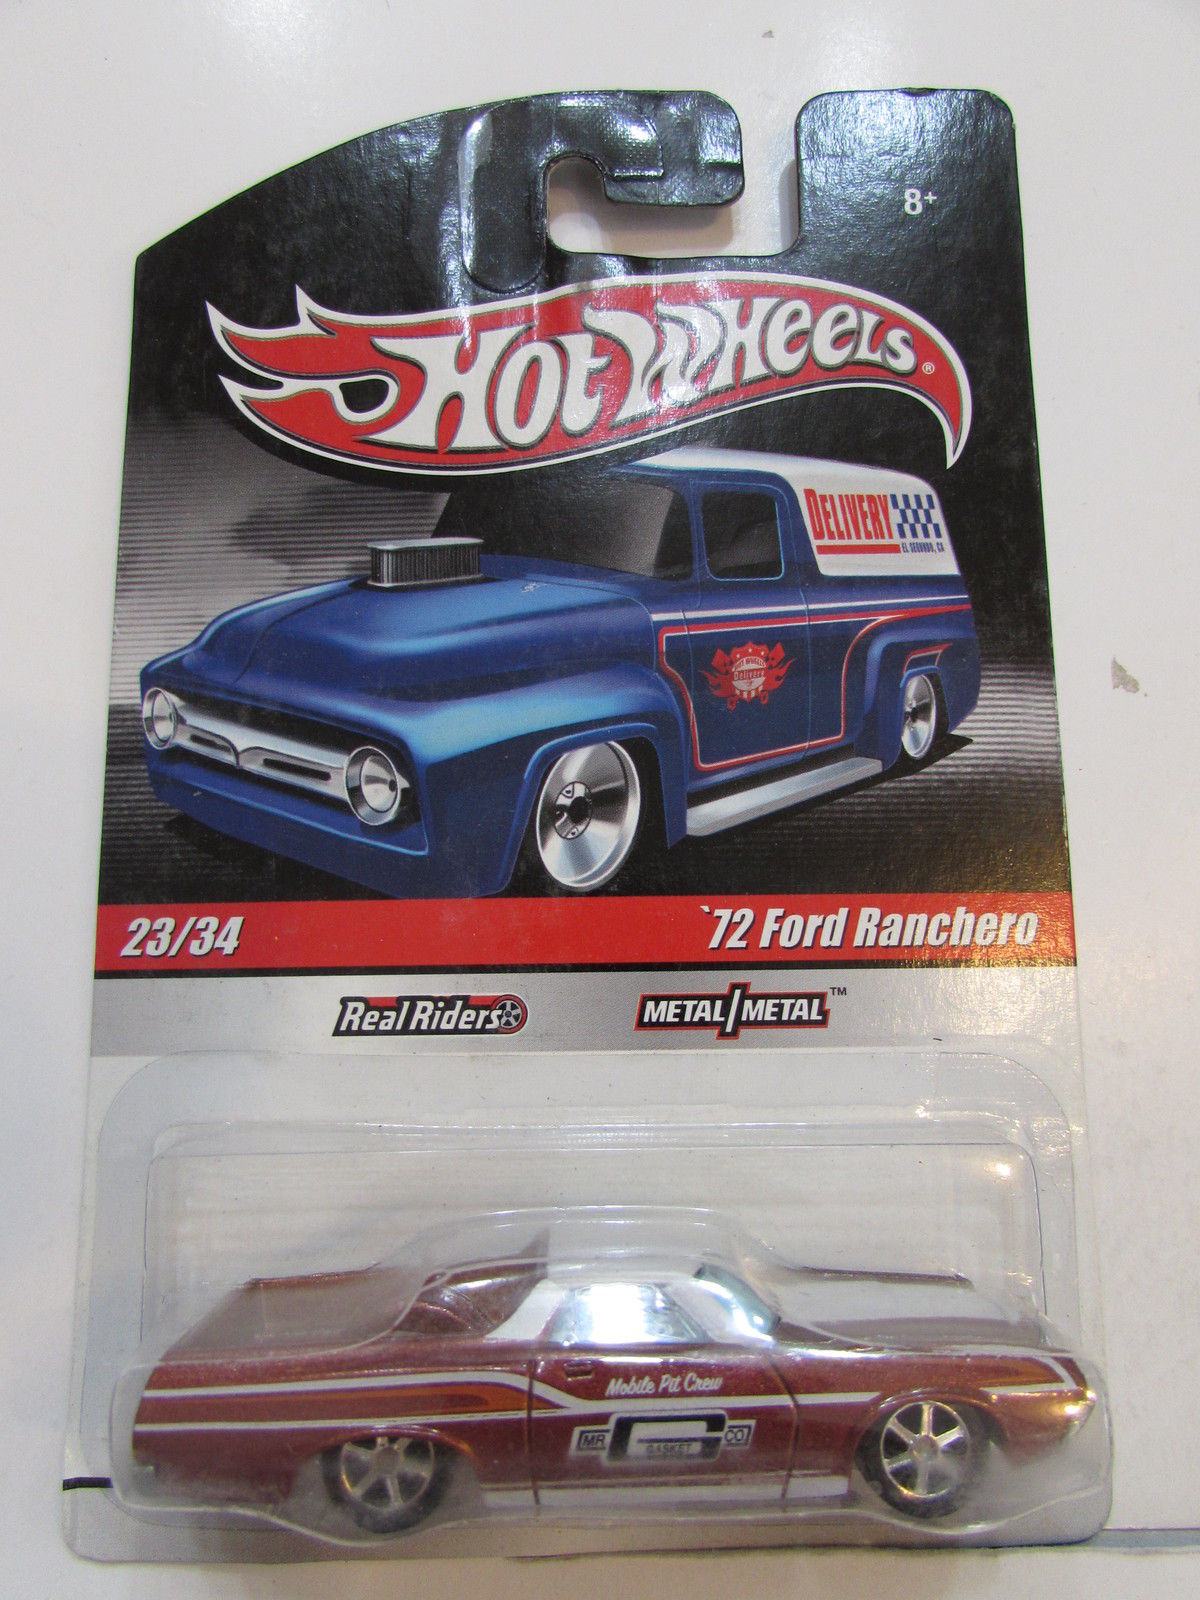 HOT WHEELS DELIVERY #23/34 - '72 FORD RANCHERO